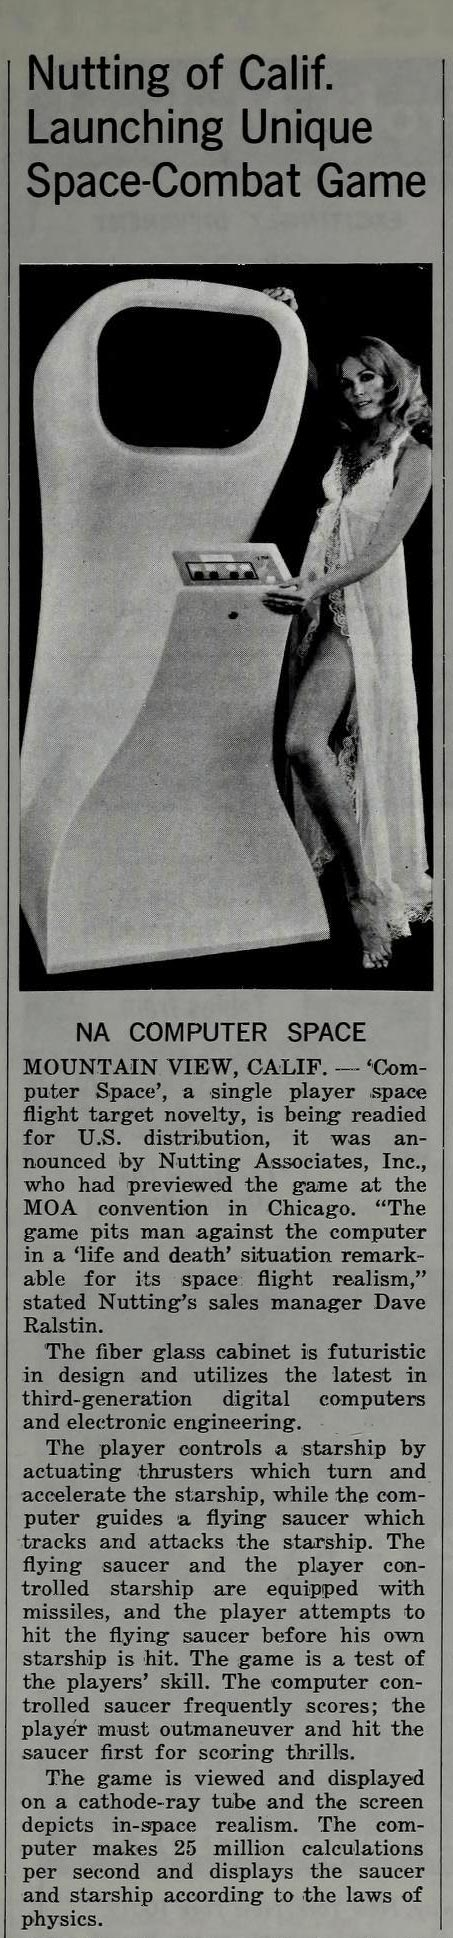 Magazine article for Computer Space, the first commercial video game